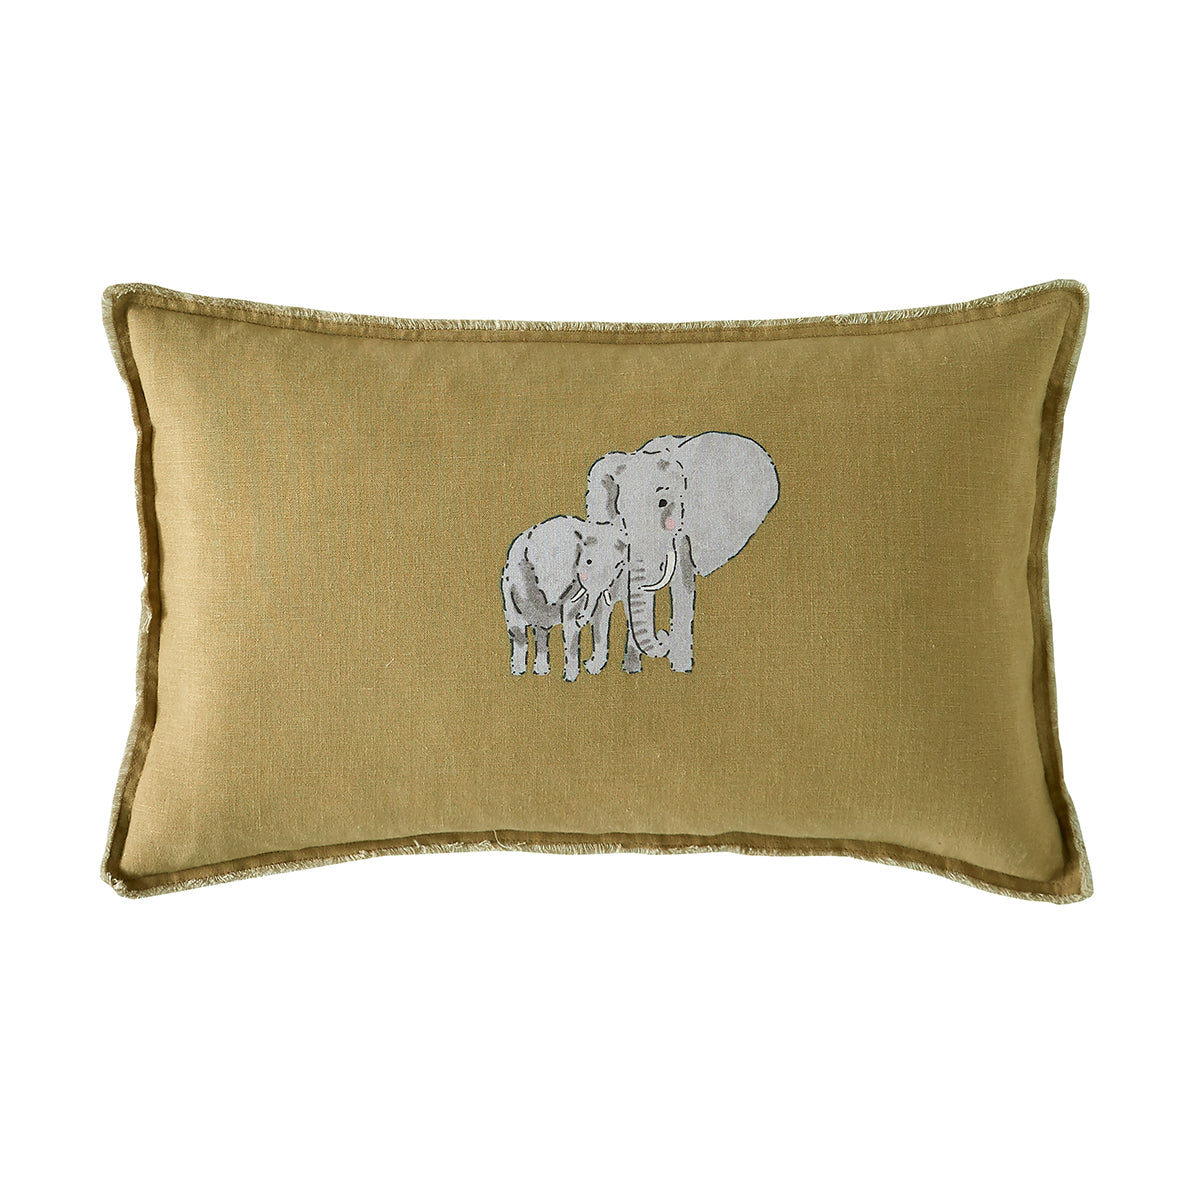 Elephant Decorative Cushion by Sophie Allport